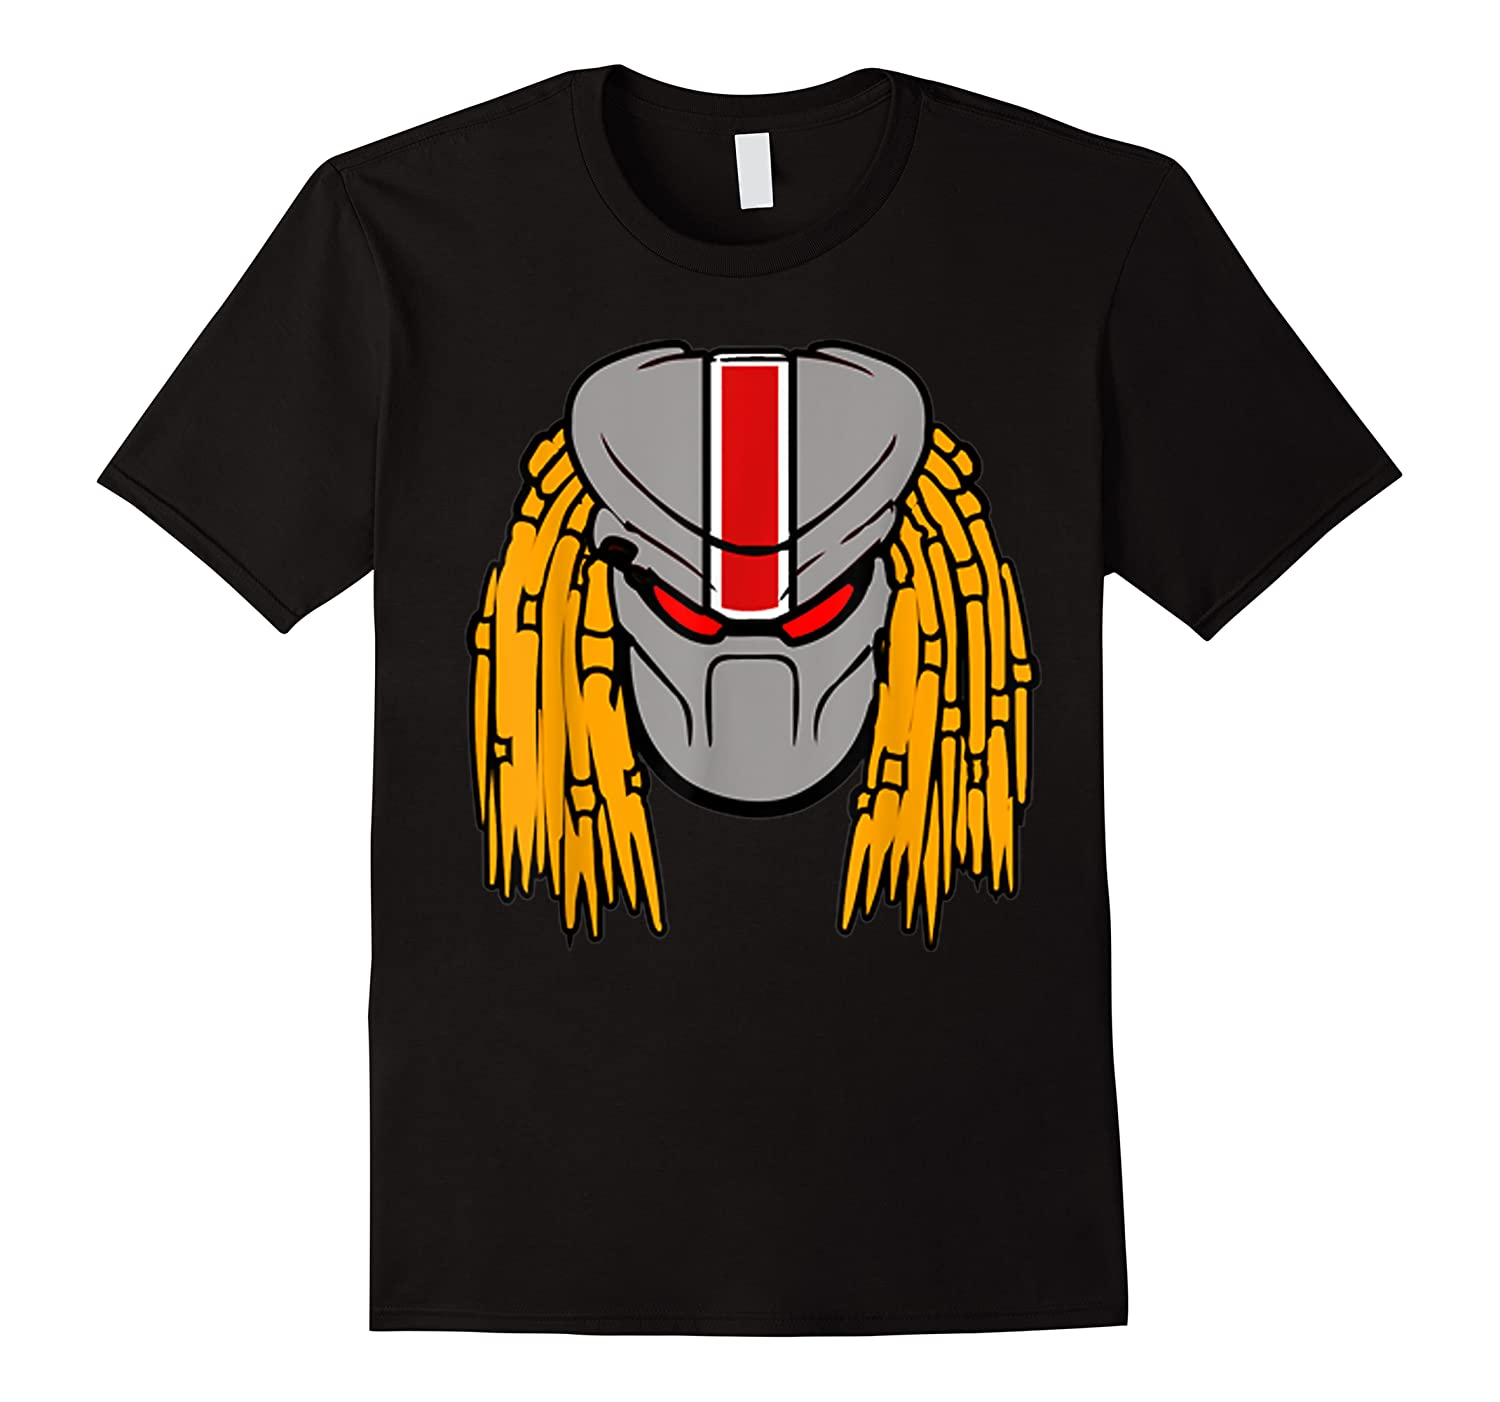 The State Of Ohio Loves The Predator Shirts